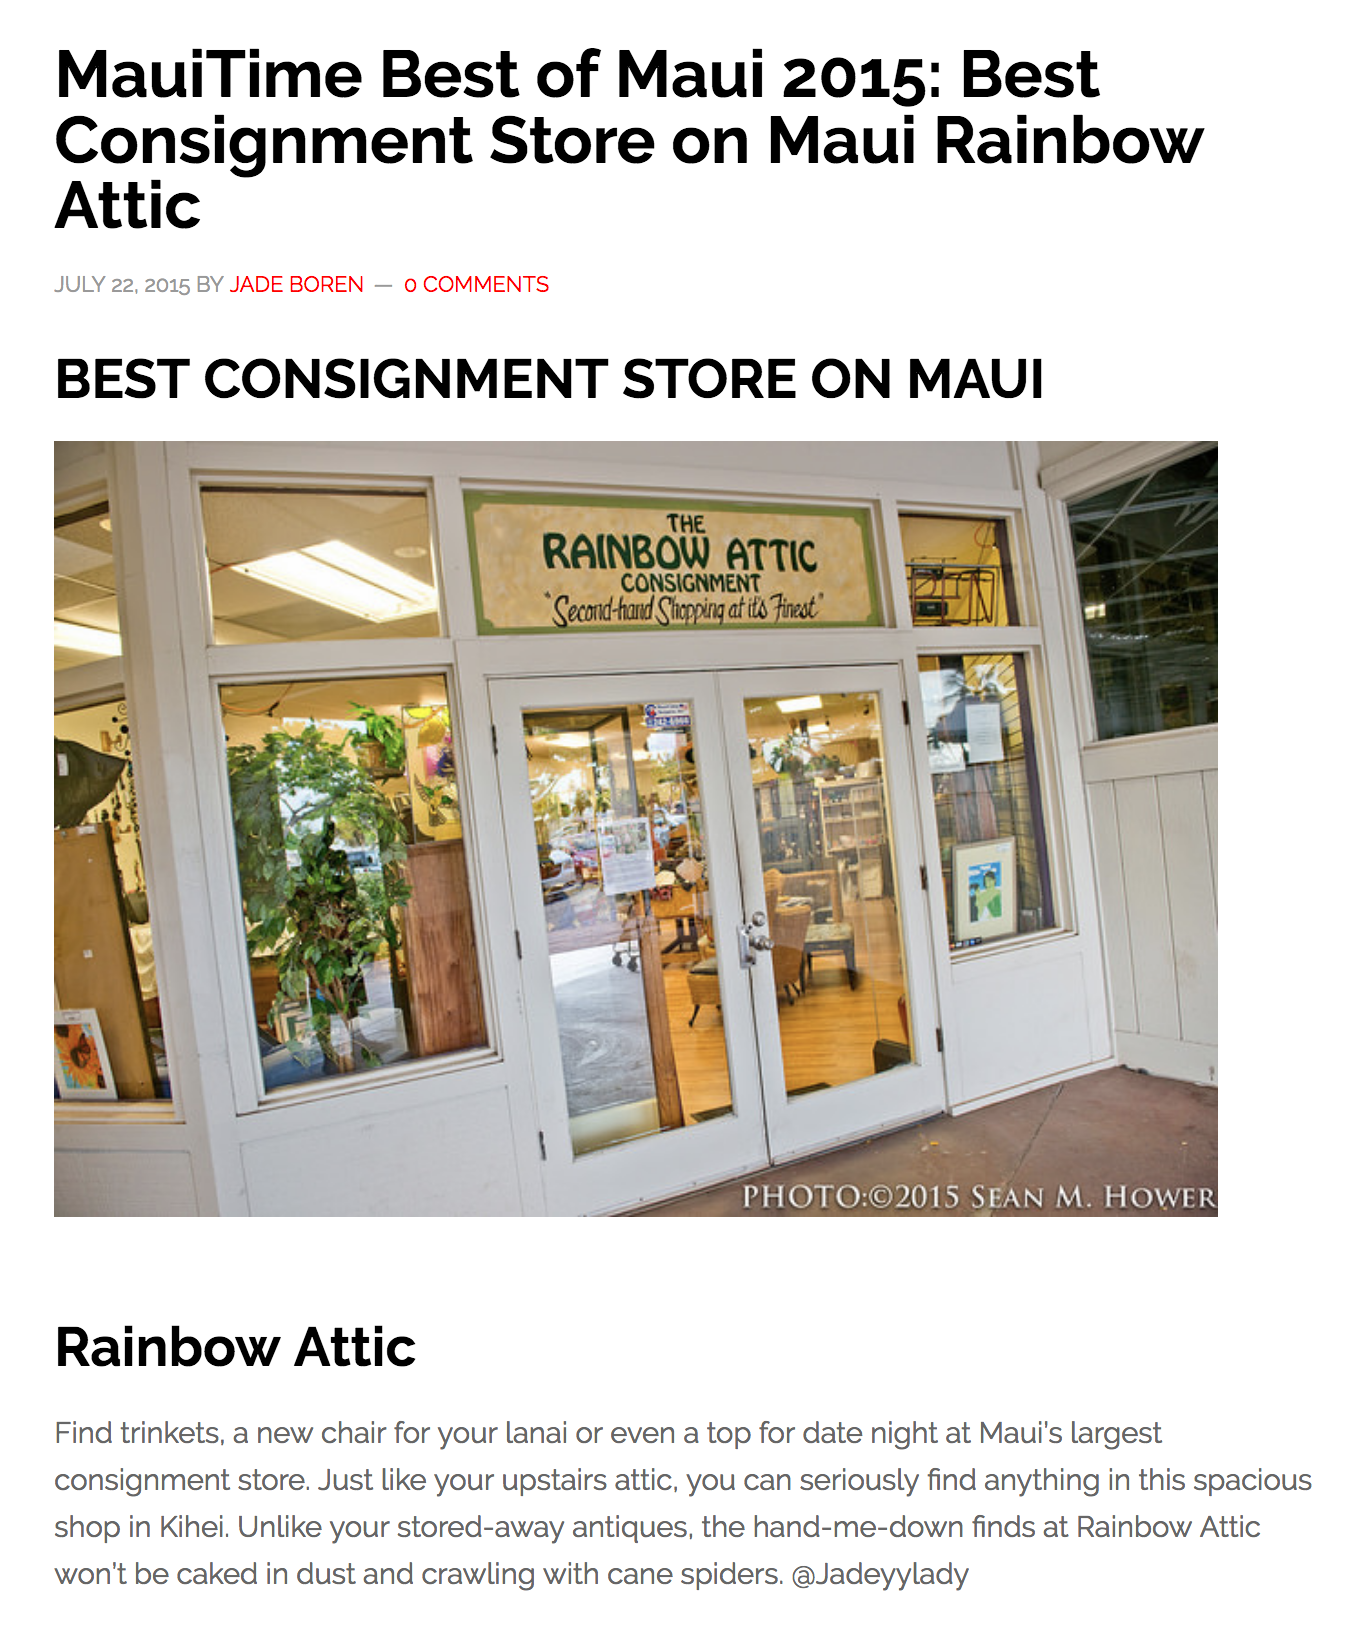 MauiTime Best of Maui 2015: Best Consignment Store on Maui Rainbow Attic